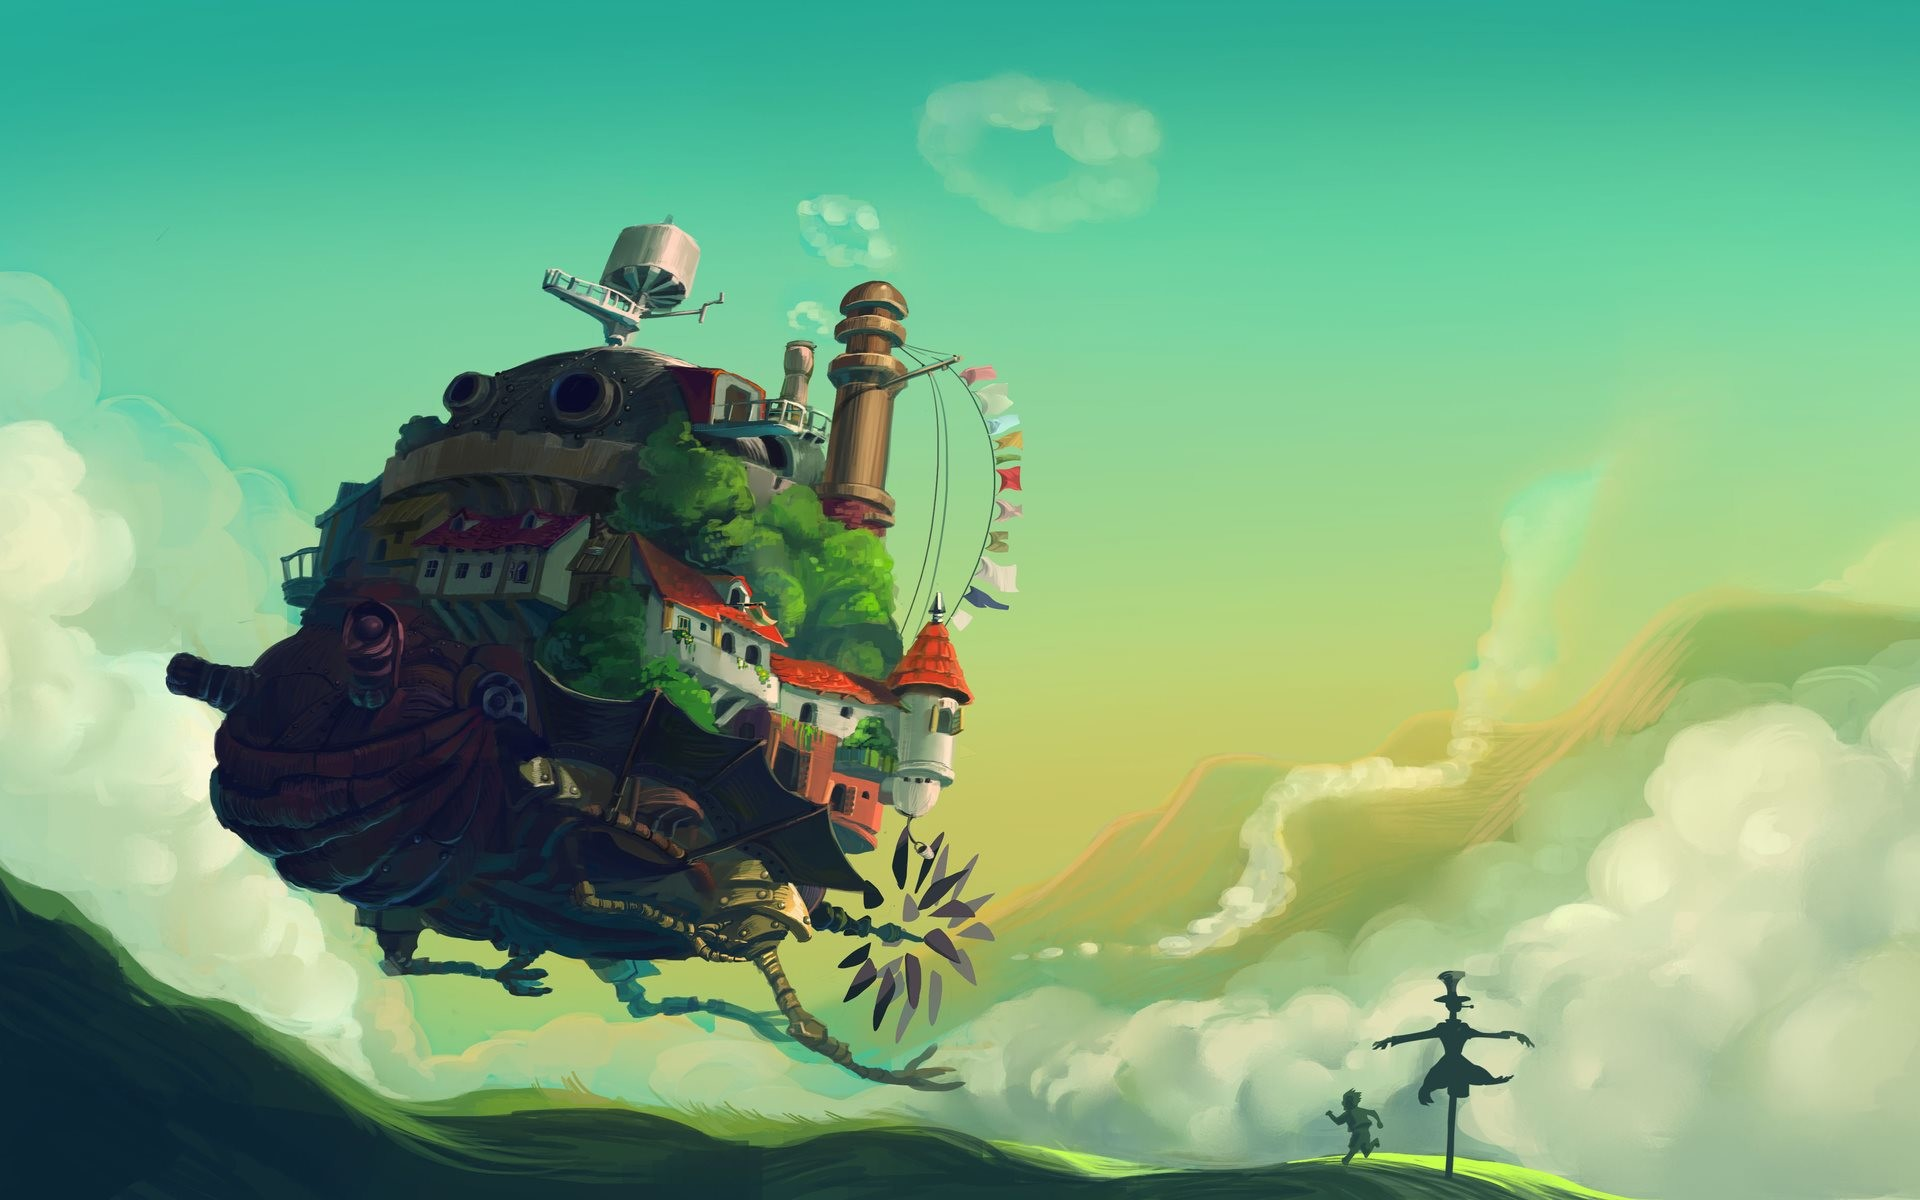 1920x1200 howl's moving castle moving spell | Howl's Moving Castle Wallpaper - High  Definition wallpapers | Latest